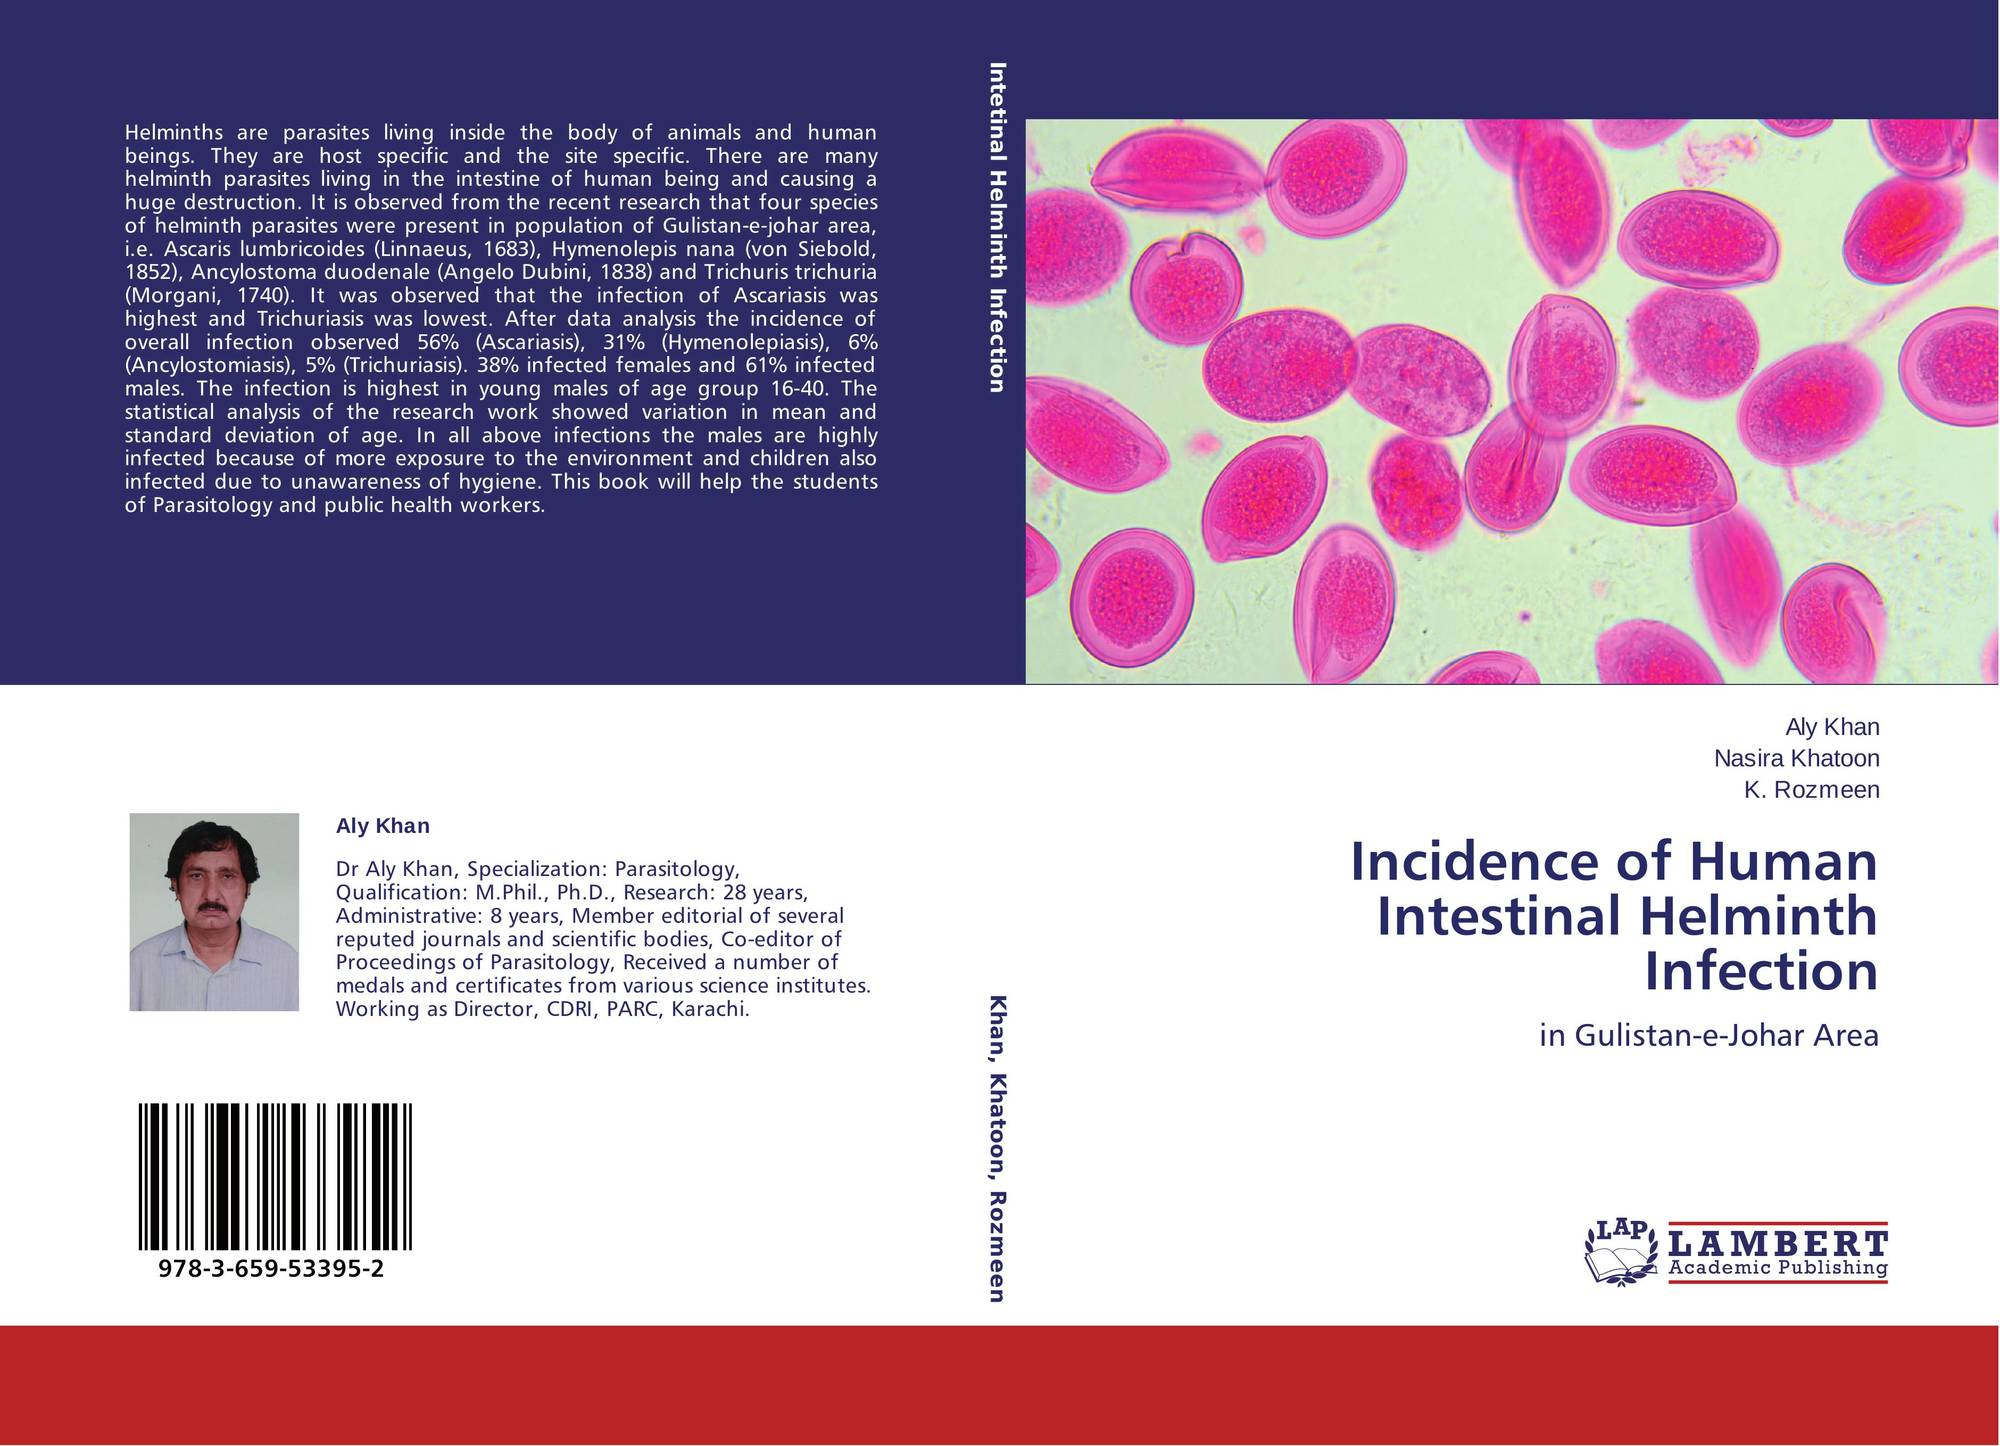 helminth infection incidence